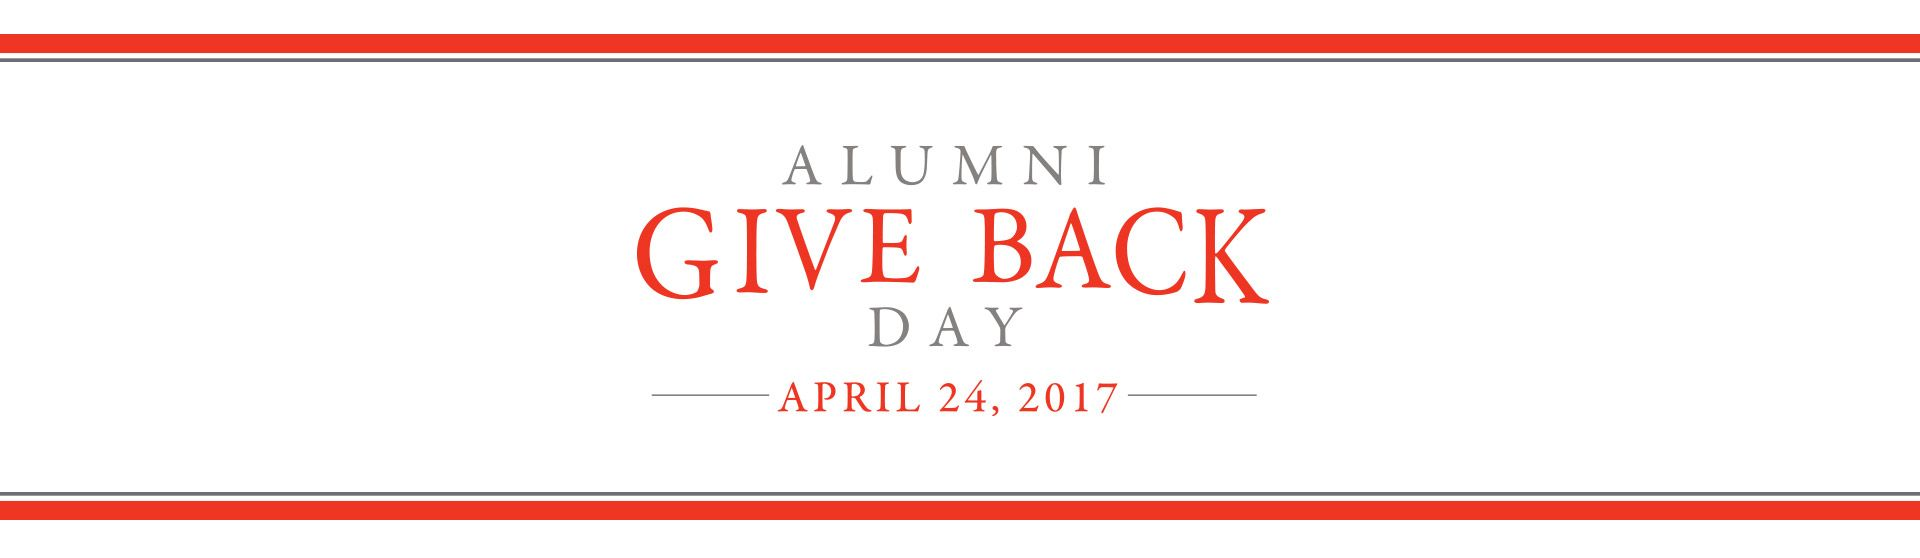 Alumni give back day hawken alumni have a long tradition of giving back to their community and that is once again abundantly evident as we look forward to alumni give back day fandeluxe Choice Image